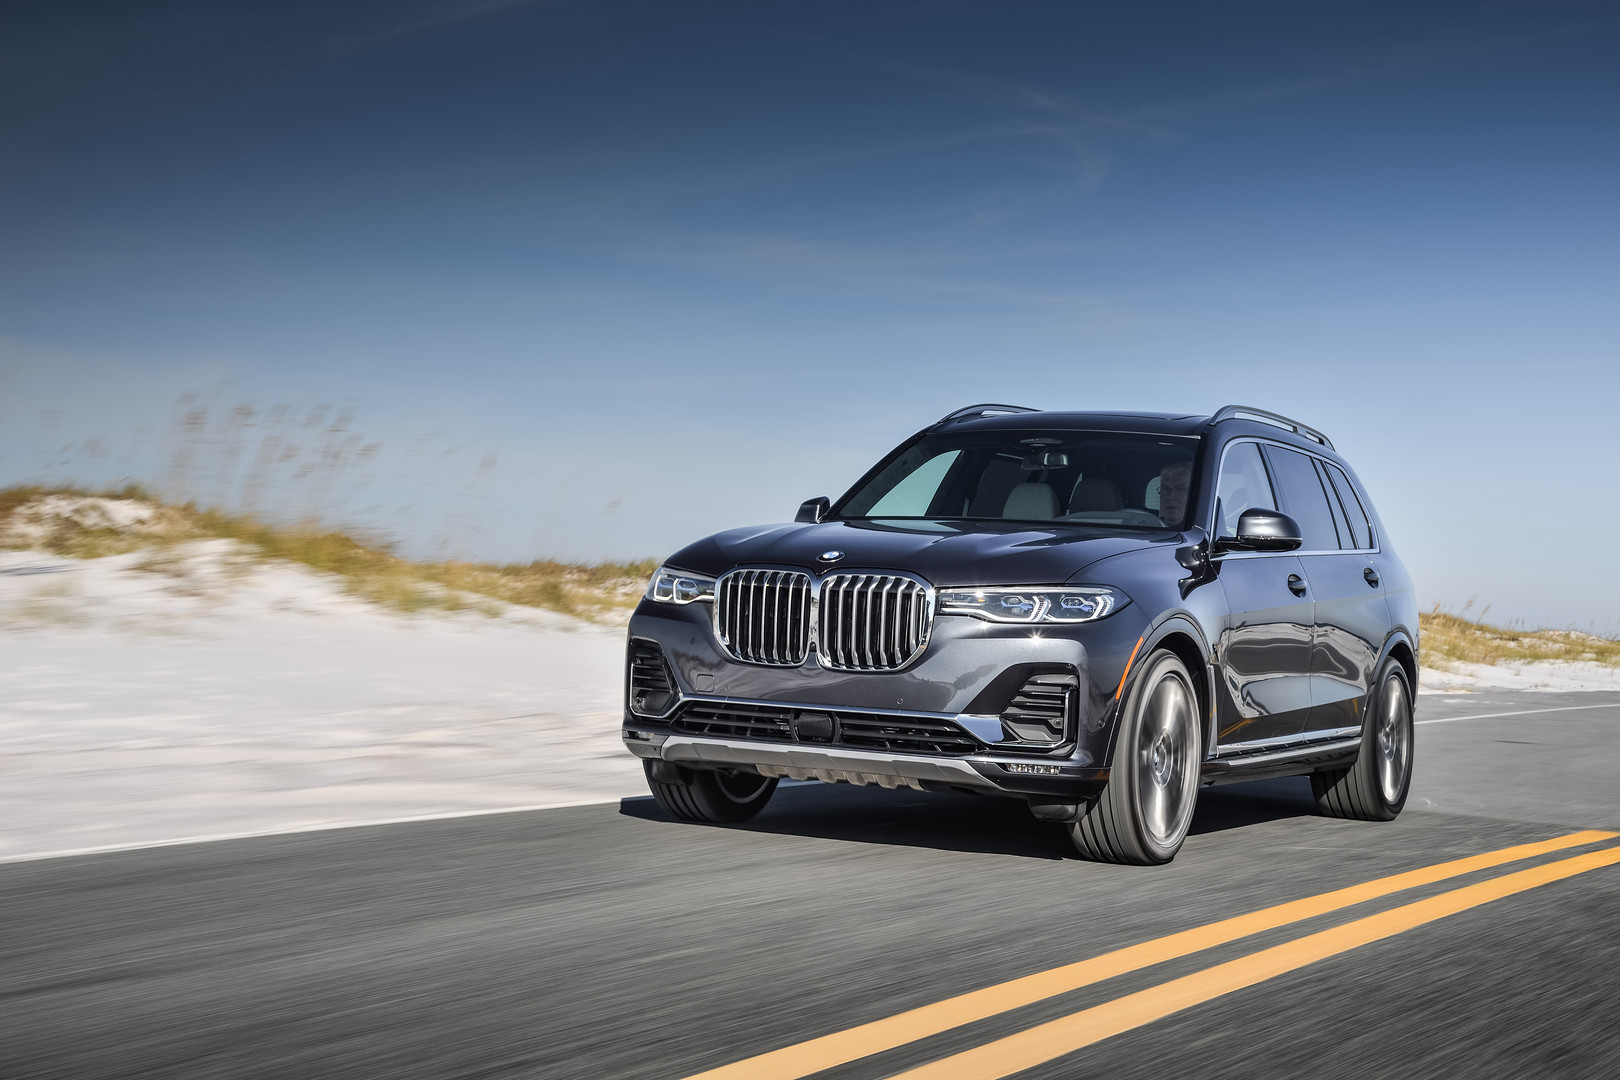 7 Passenger Suv List >> BMW X7 Review - GTspirit